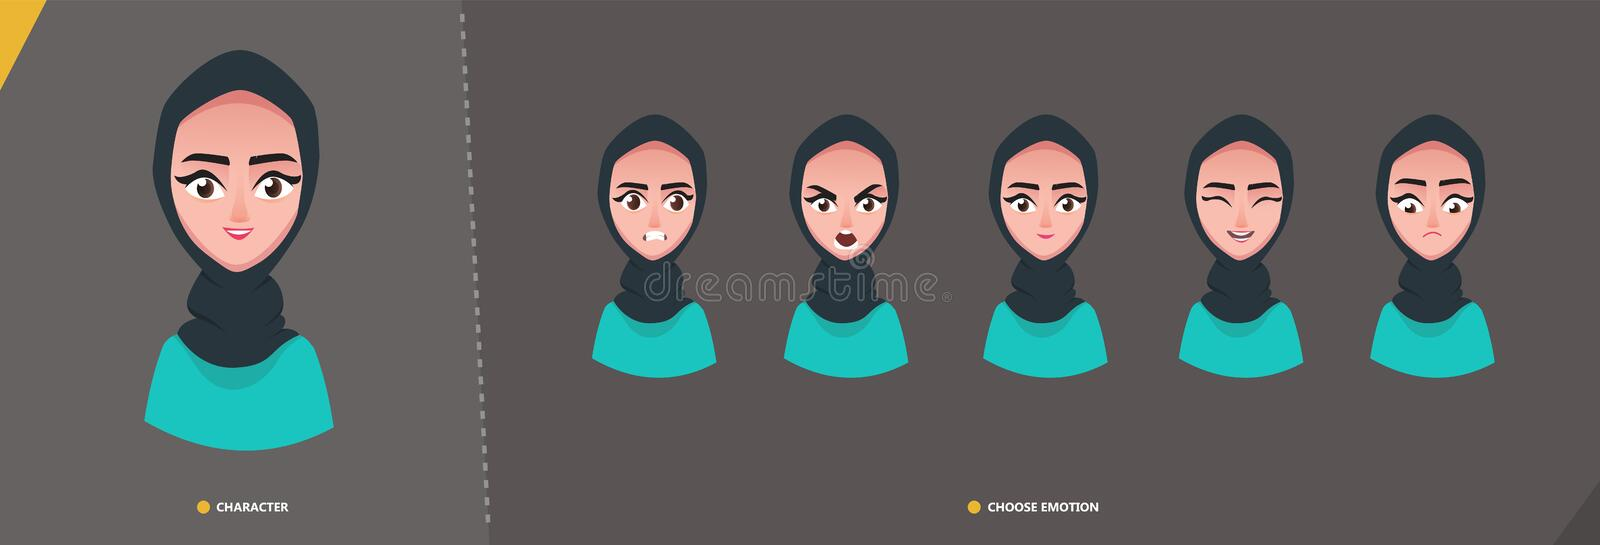 Arab woman girl character set of emotions royalty free illustration